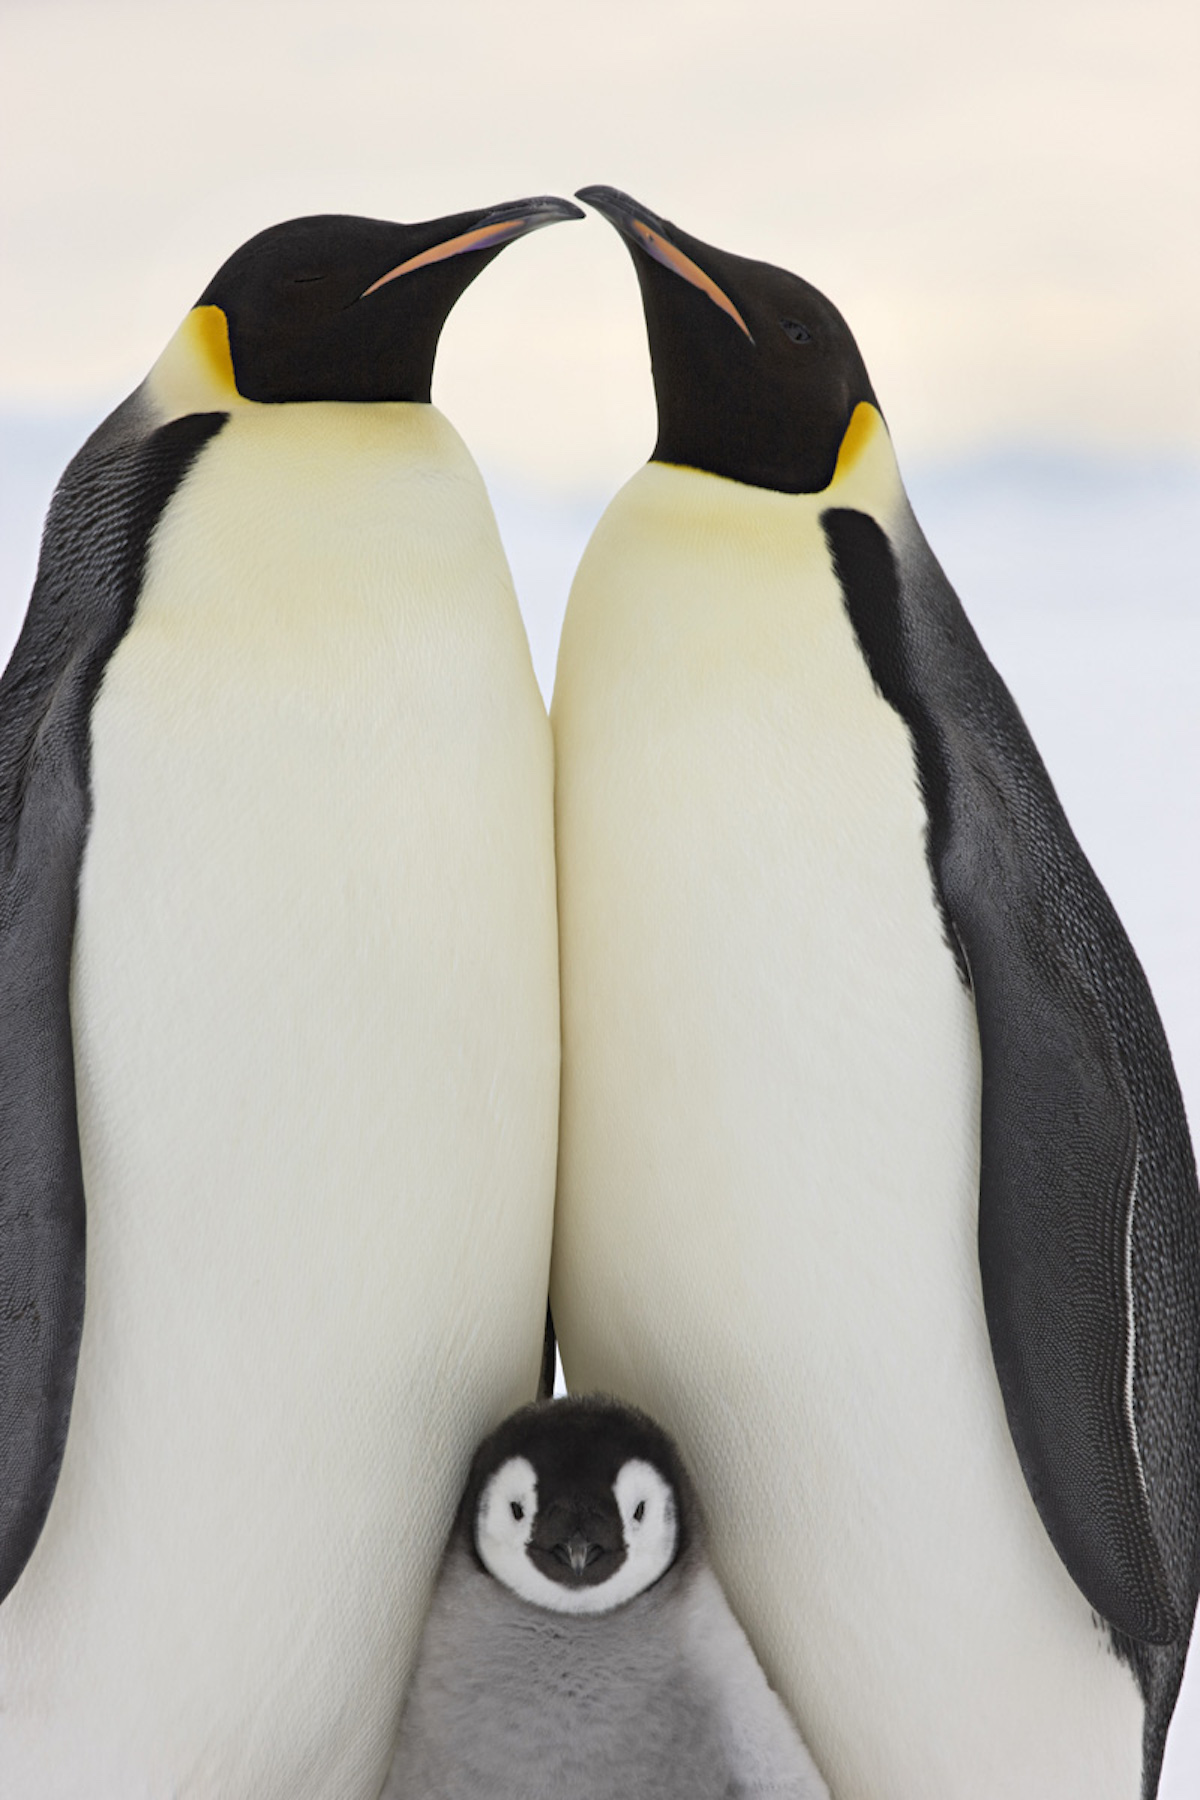 Emperor Penguin and Chick by Sue Flood